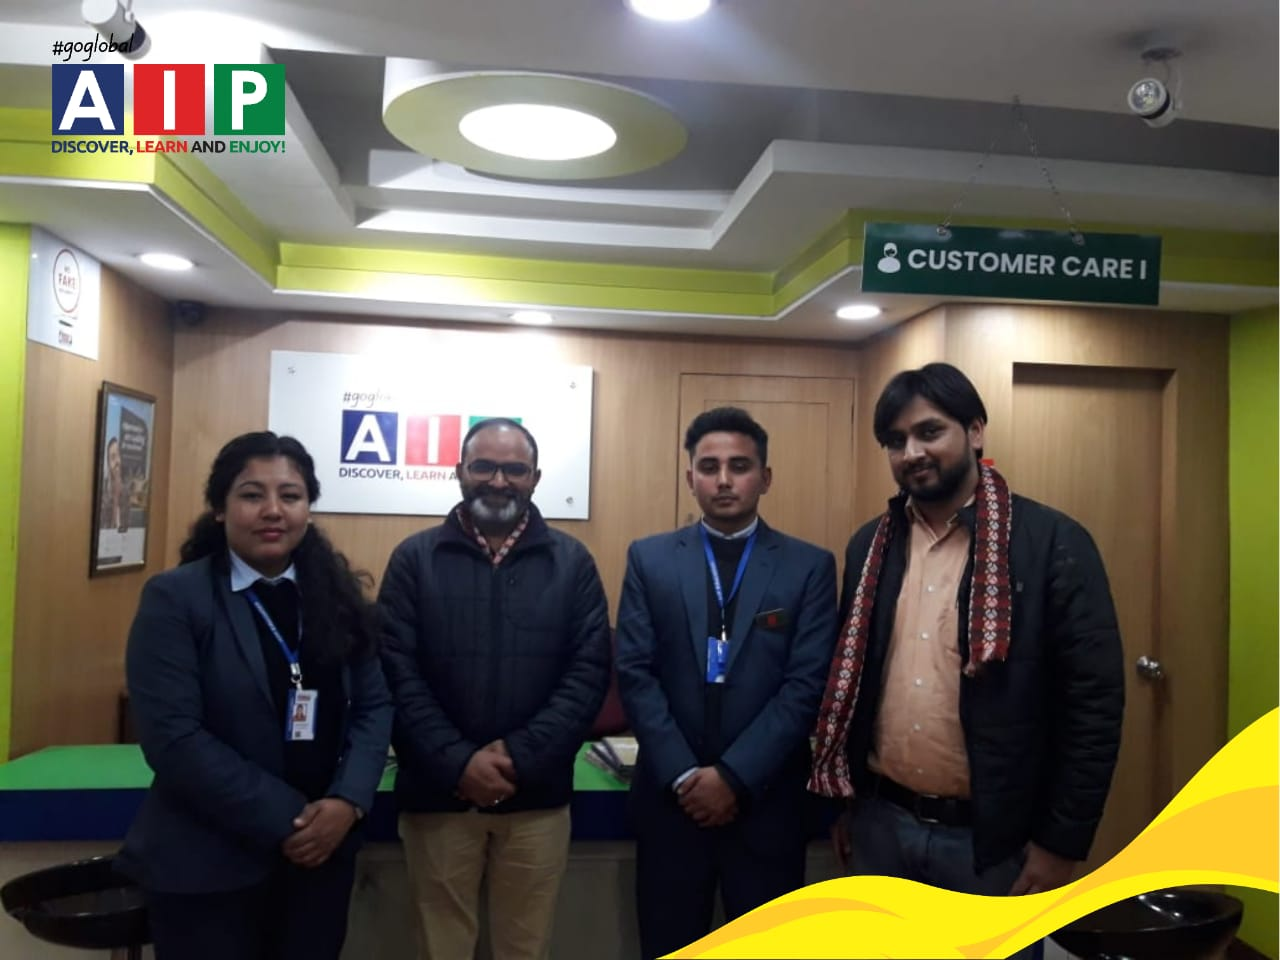 Workshop conducted on PTE by Pearson team at AIP Education, Test Preparation Block (Block B)